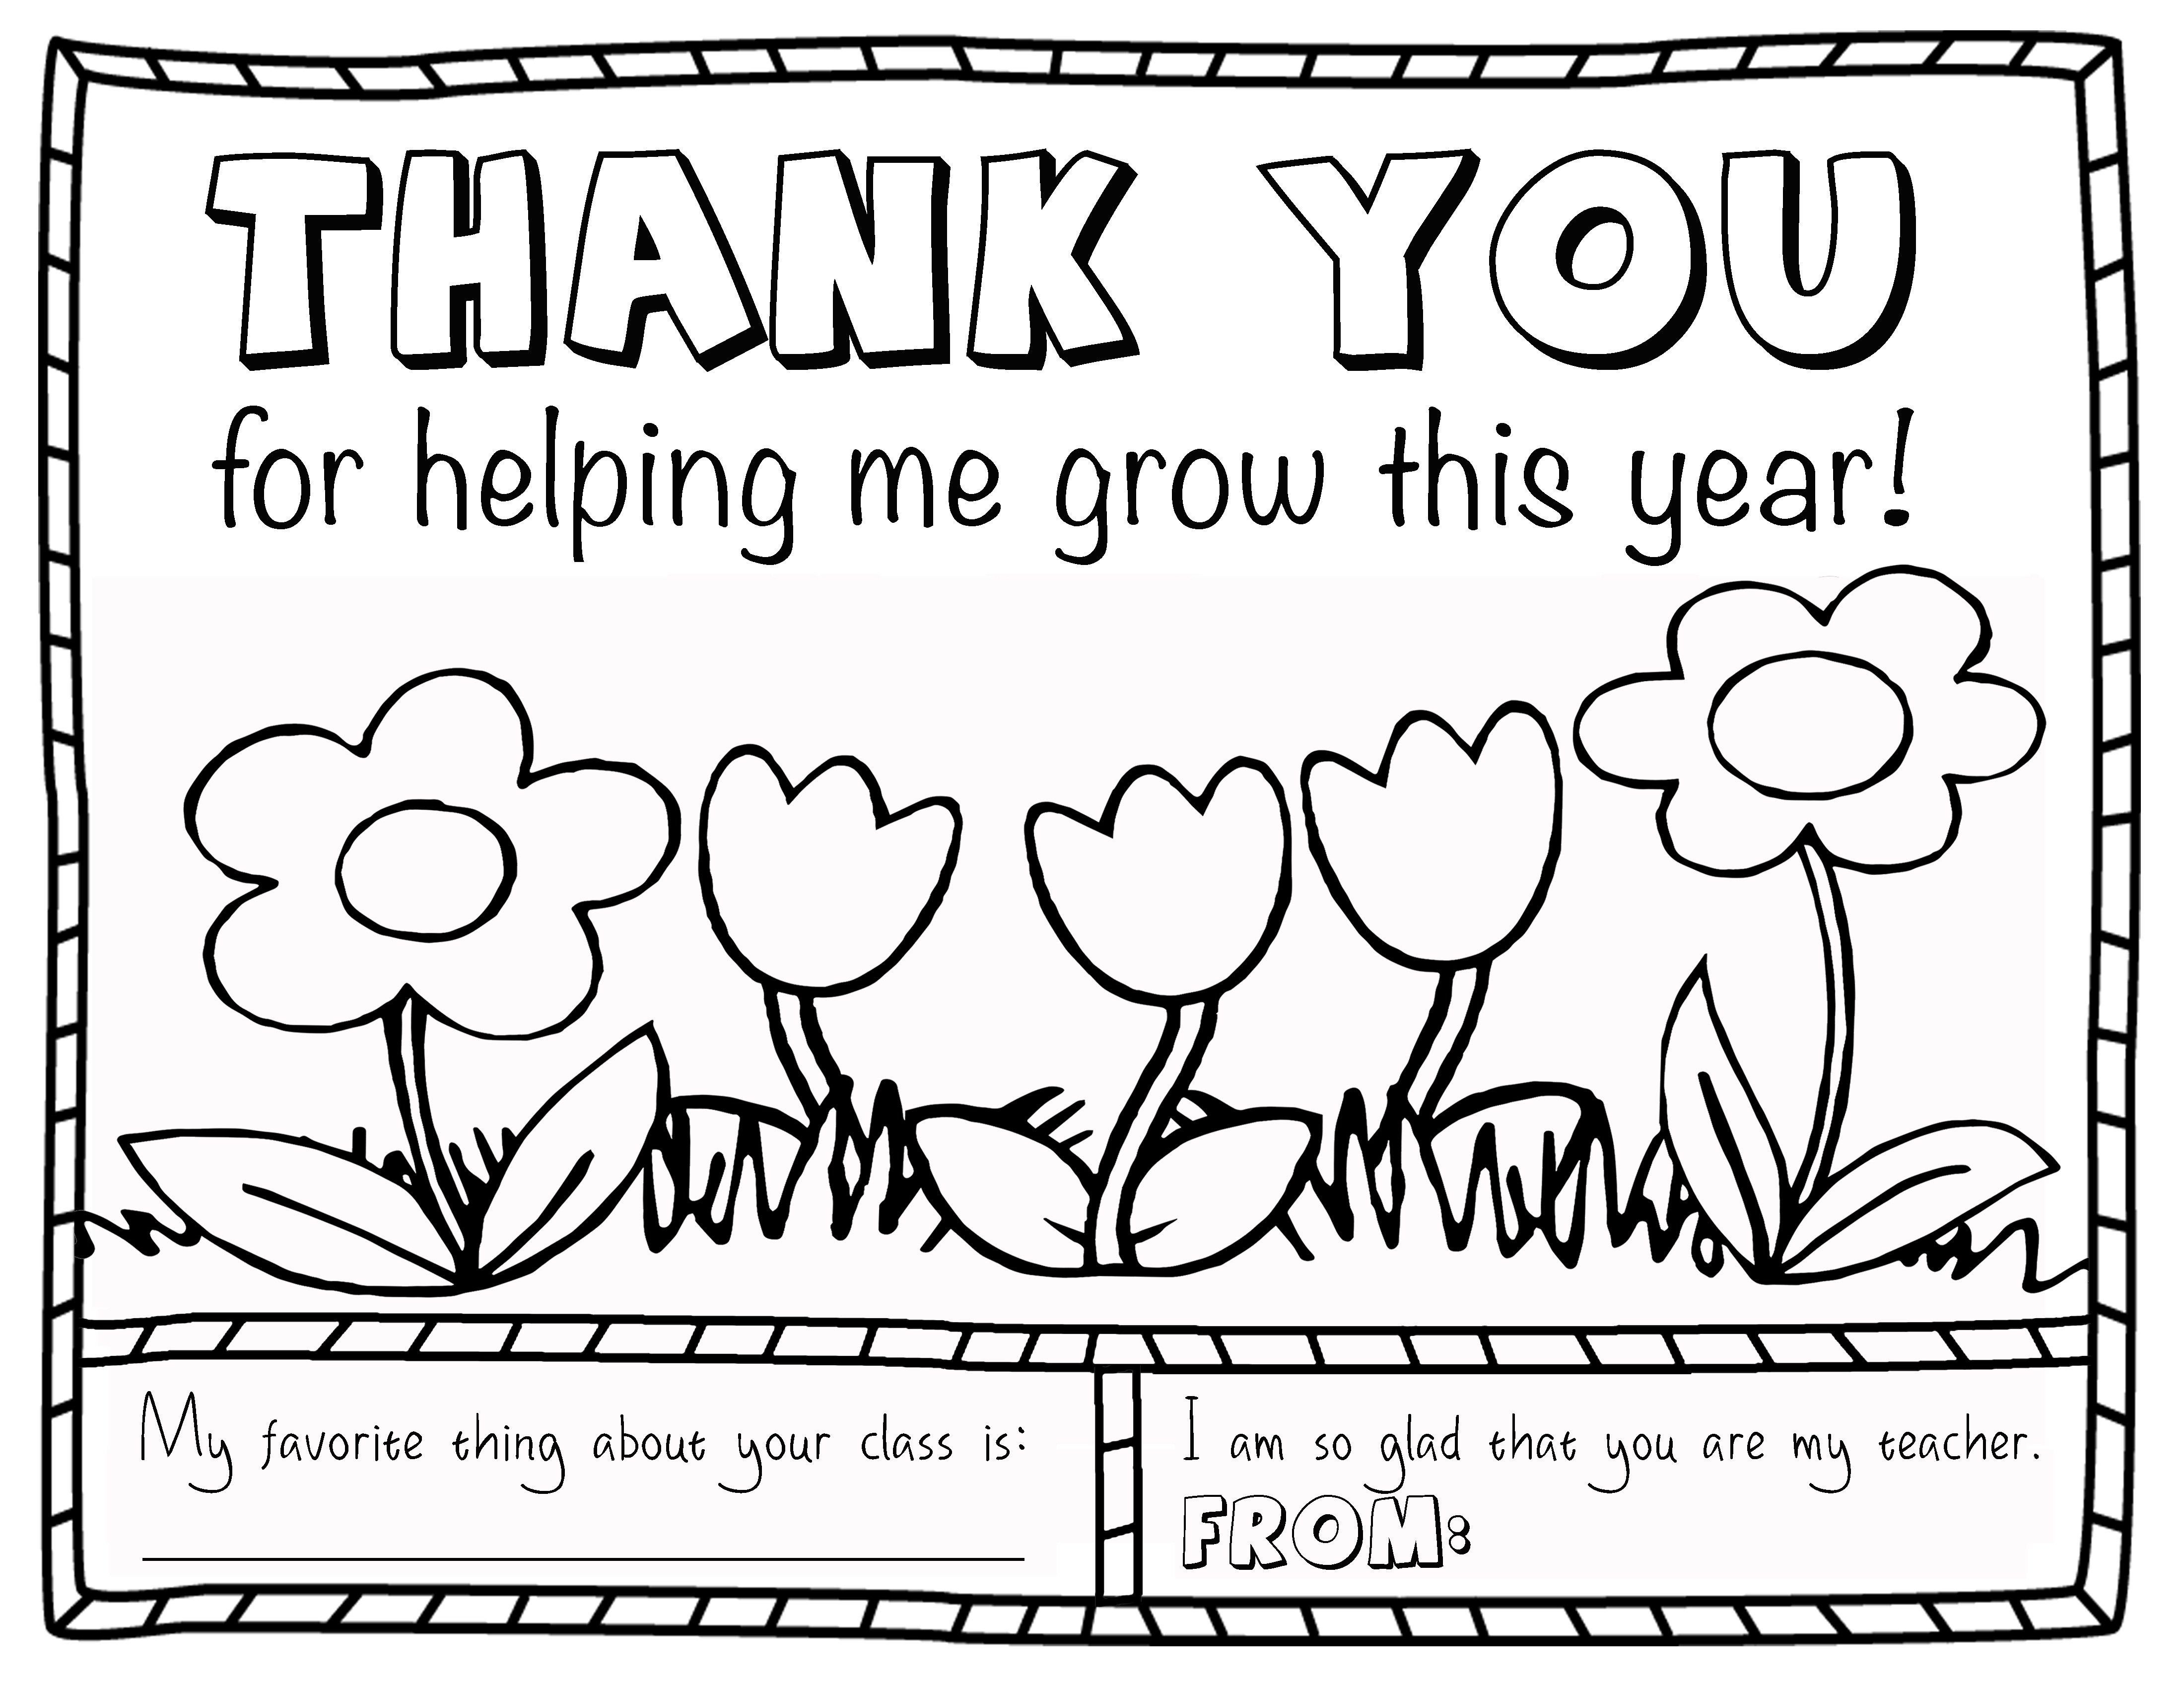 Teacher Appreciation Coloring Page With Question Jpg 4400 3400 Teacher Appreciation Printables Teacher Appreciation Cards Coloring Pages For Teenagers